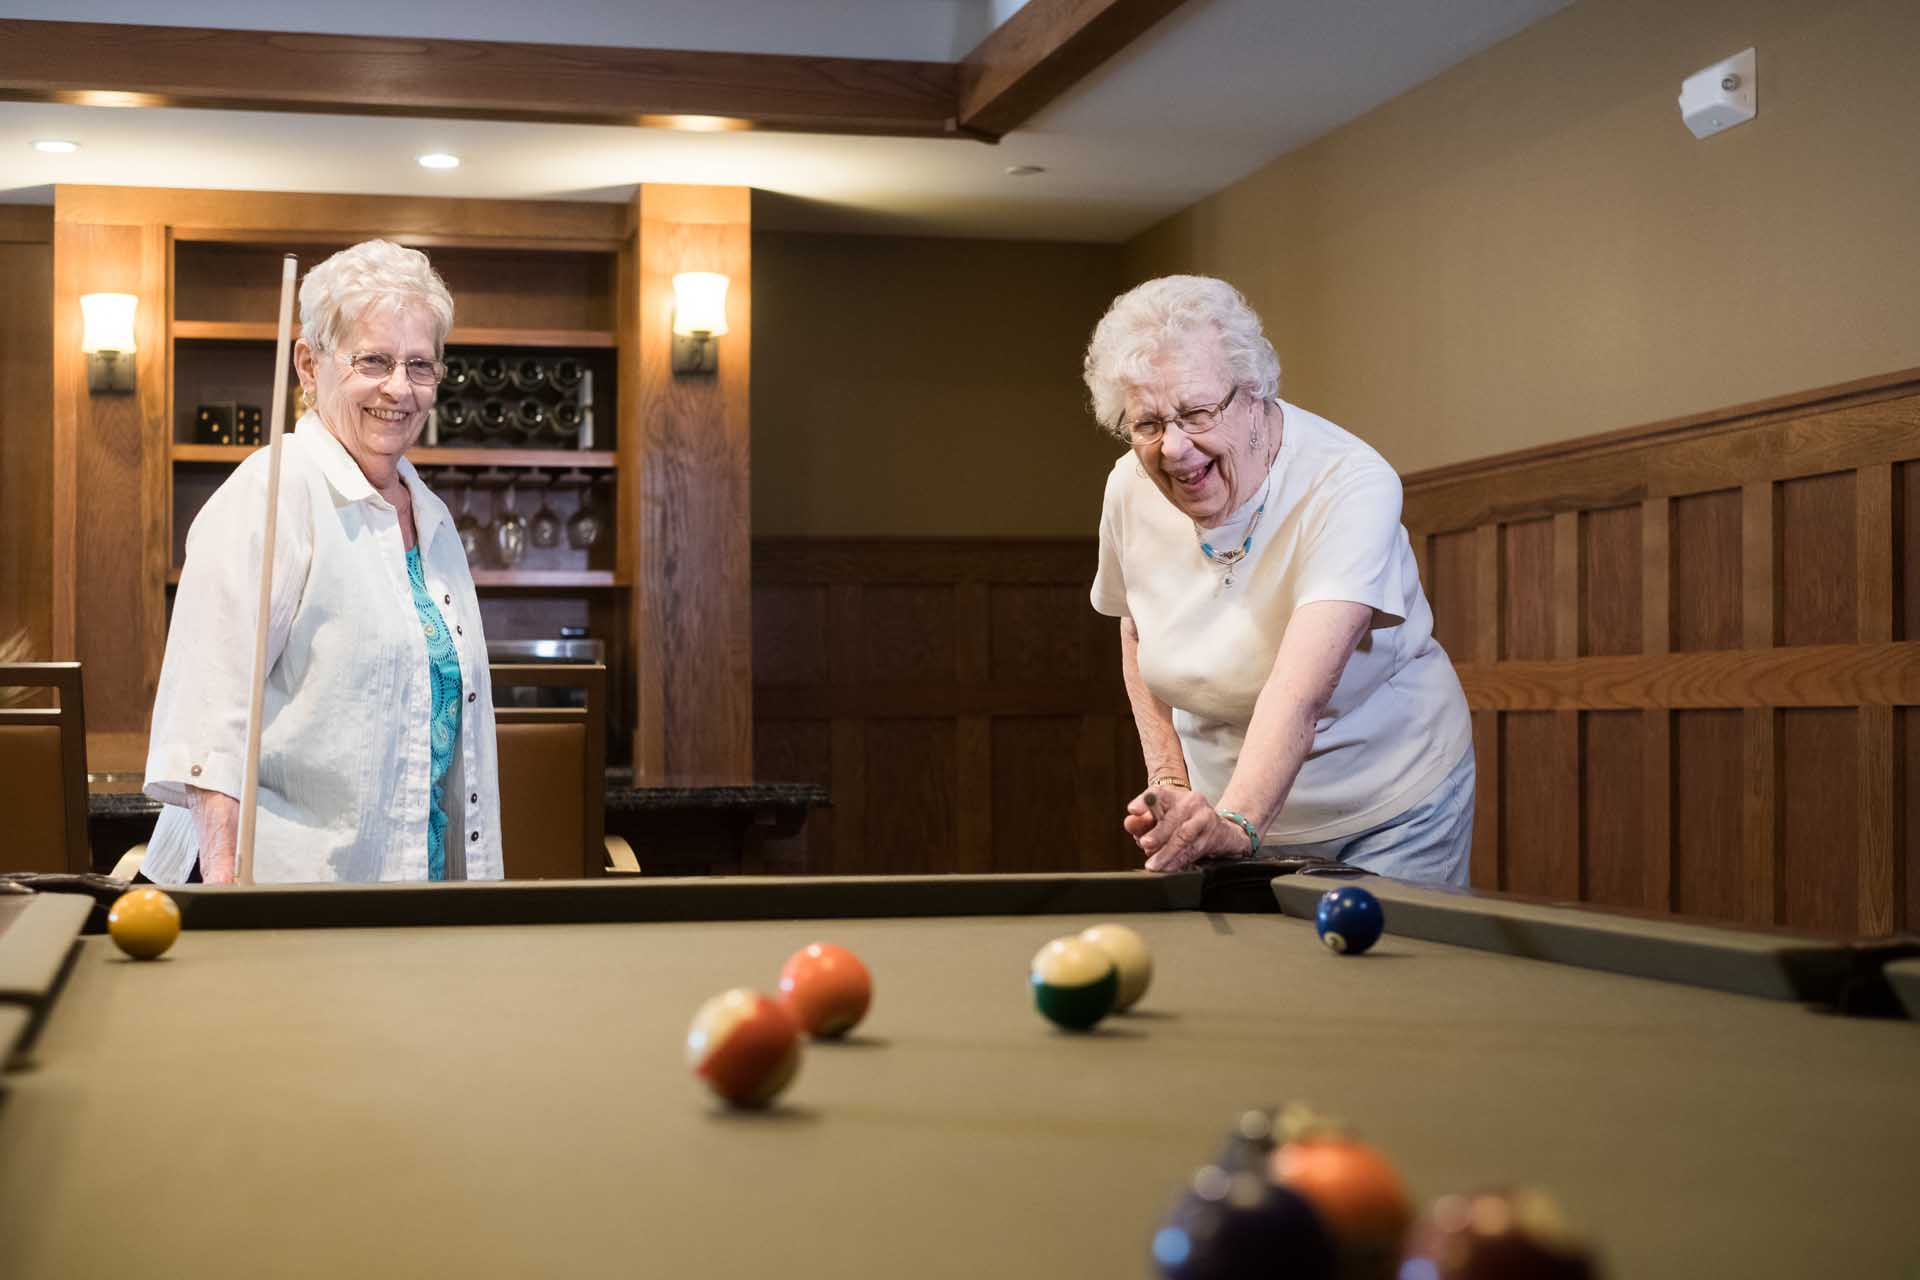 ladies playing billards